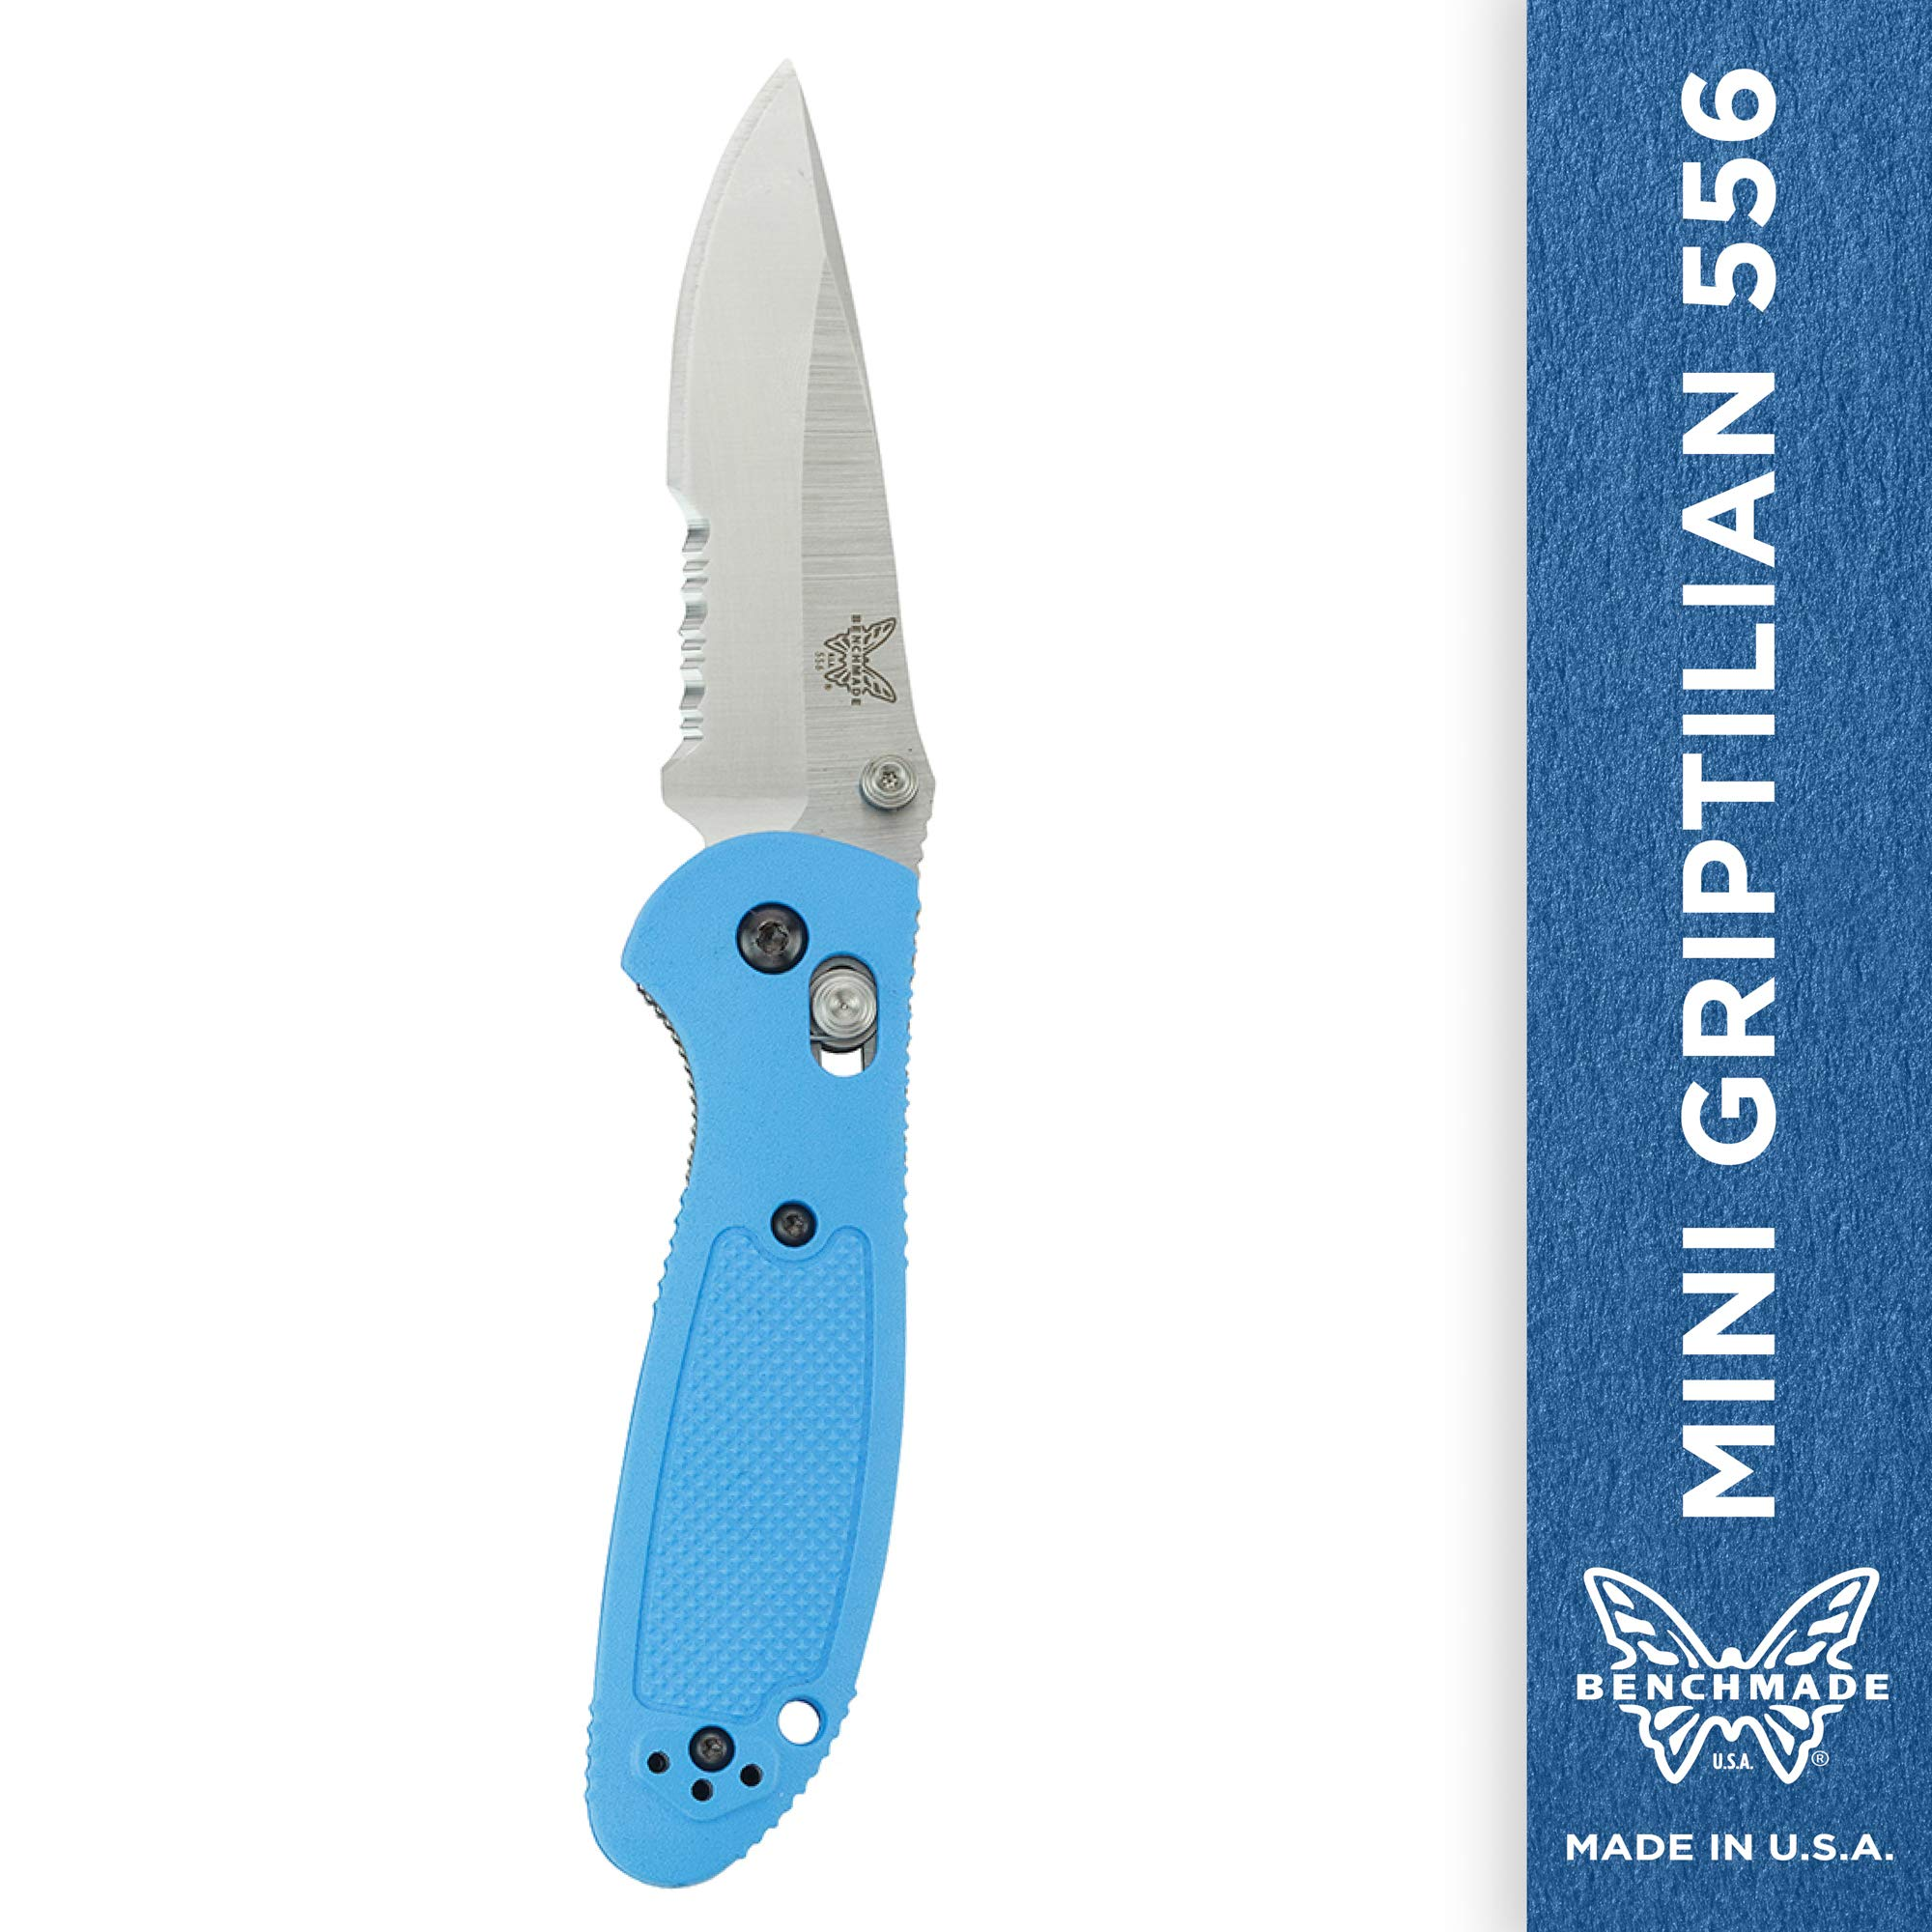 Benchmade - Mini Griptilian 556 EDC Manual Open Folding Knife Made in USA with CPM-S30V Steel, Drop-Point Blade, Serrated Edge, Satin Finish, Blue Handle